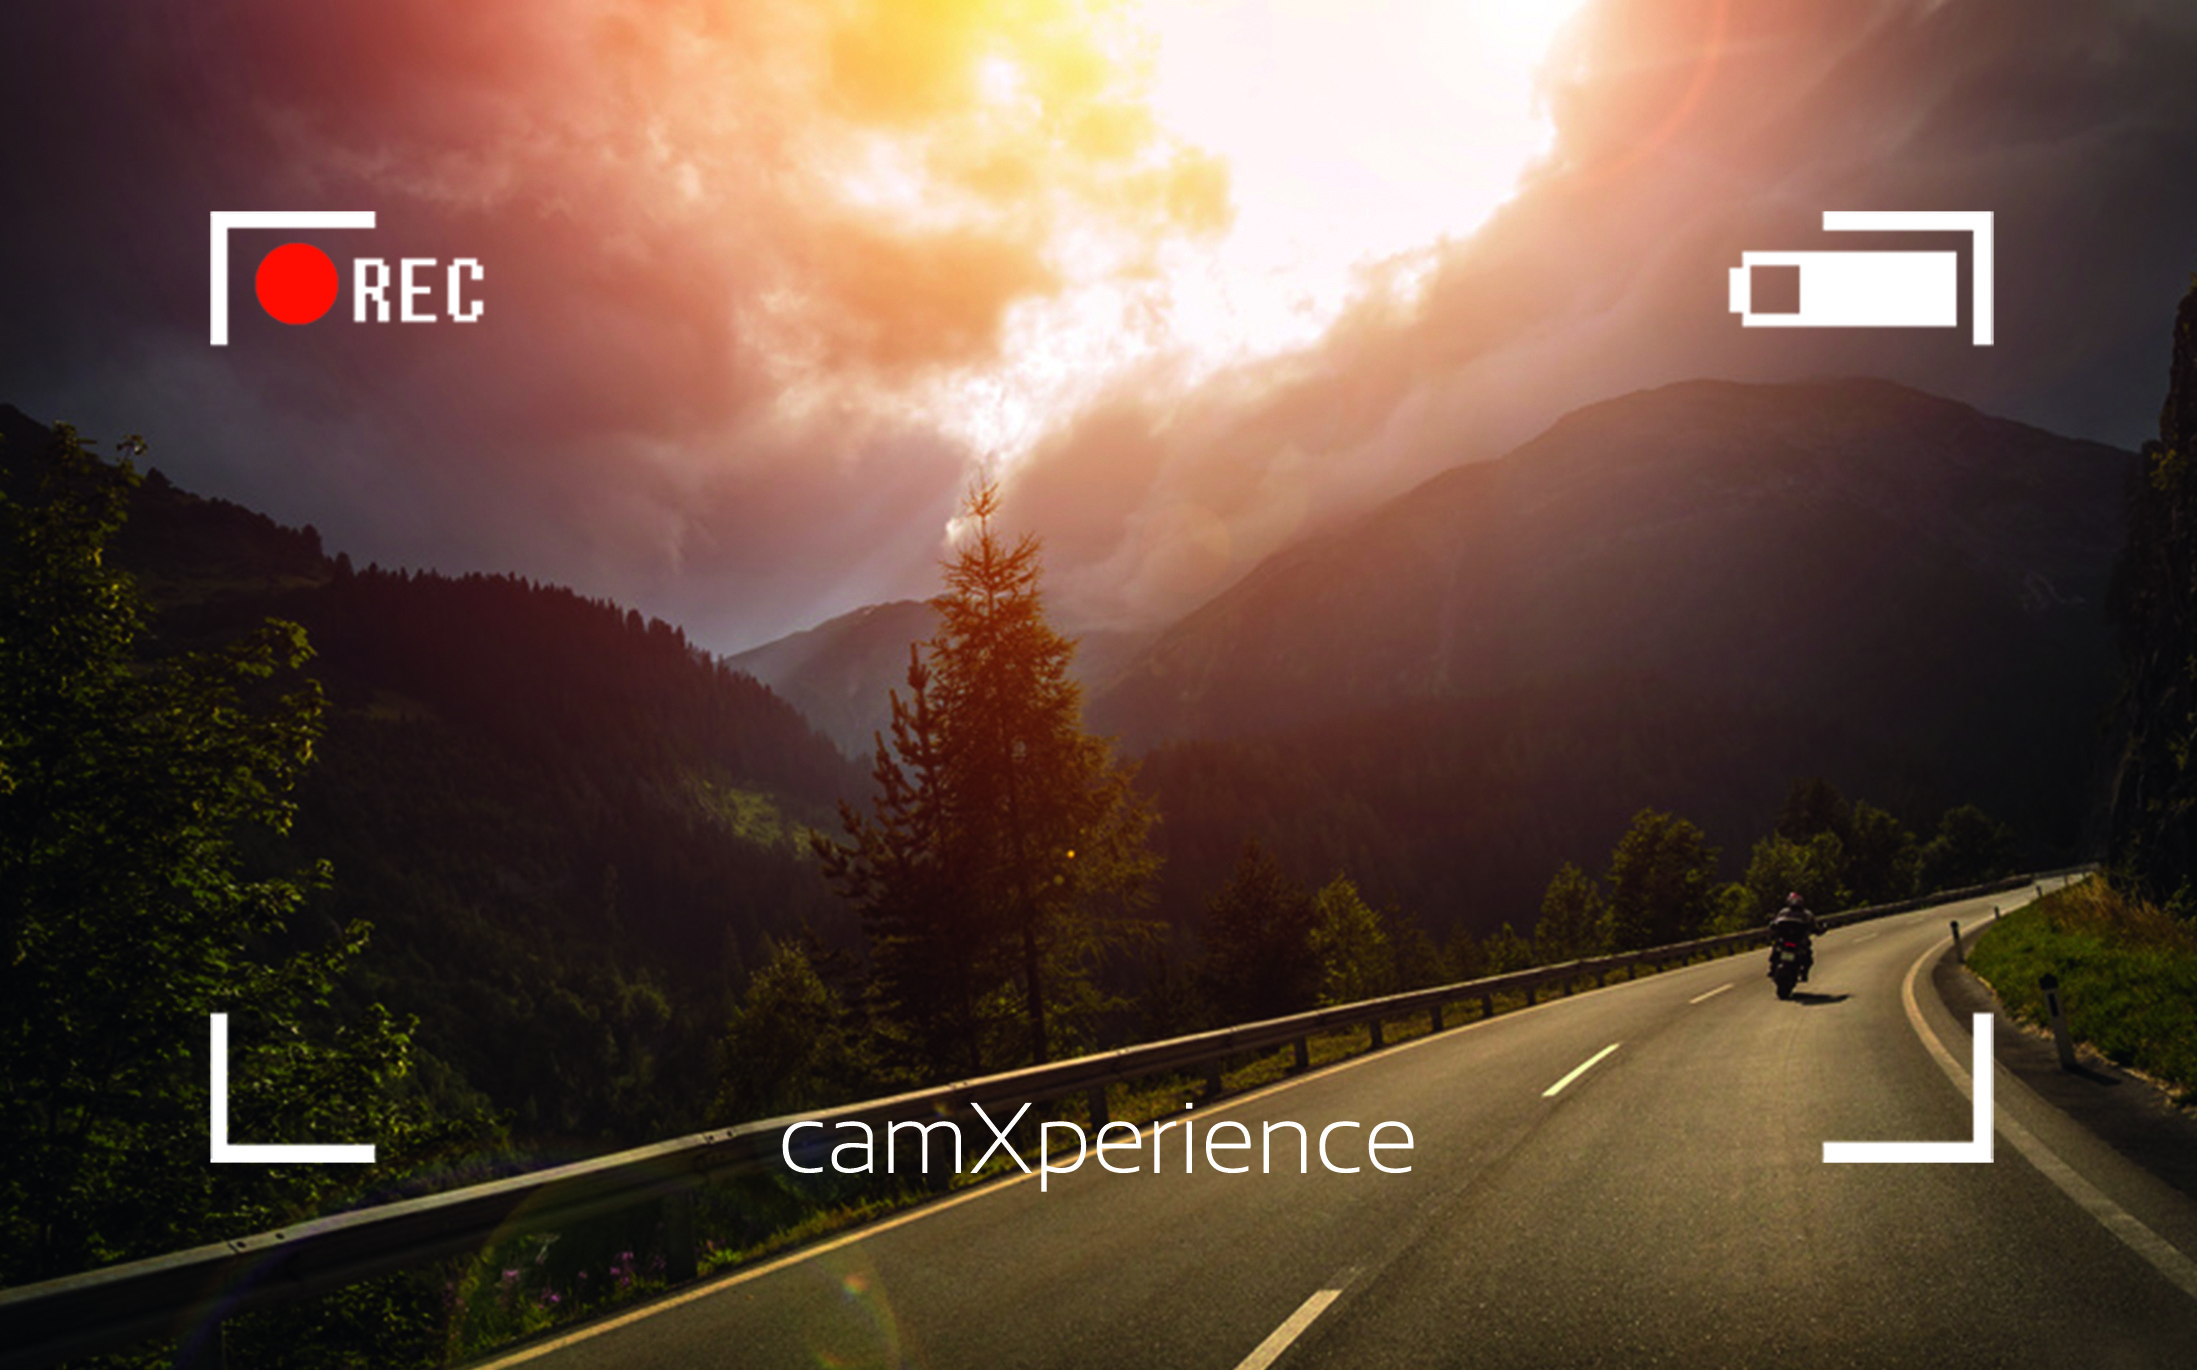 camxperience